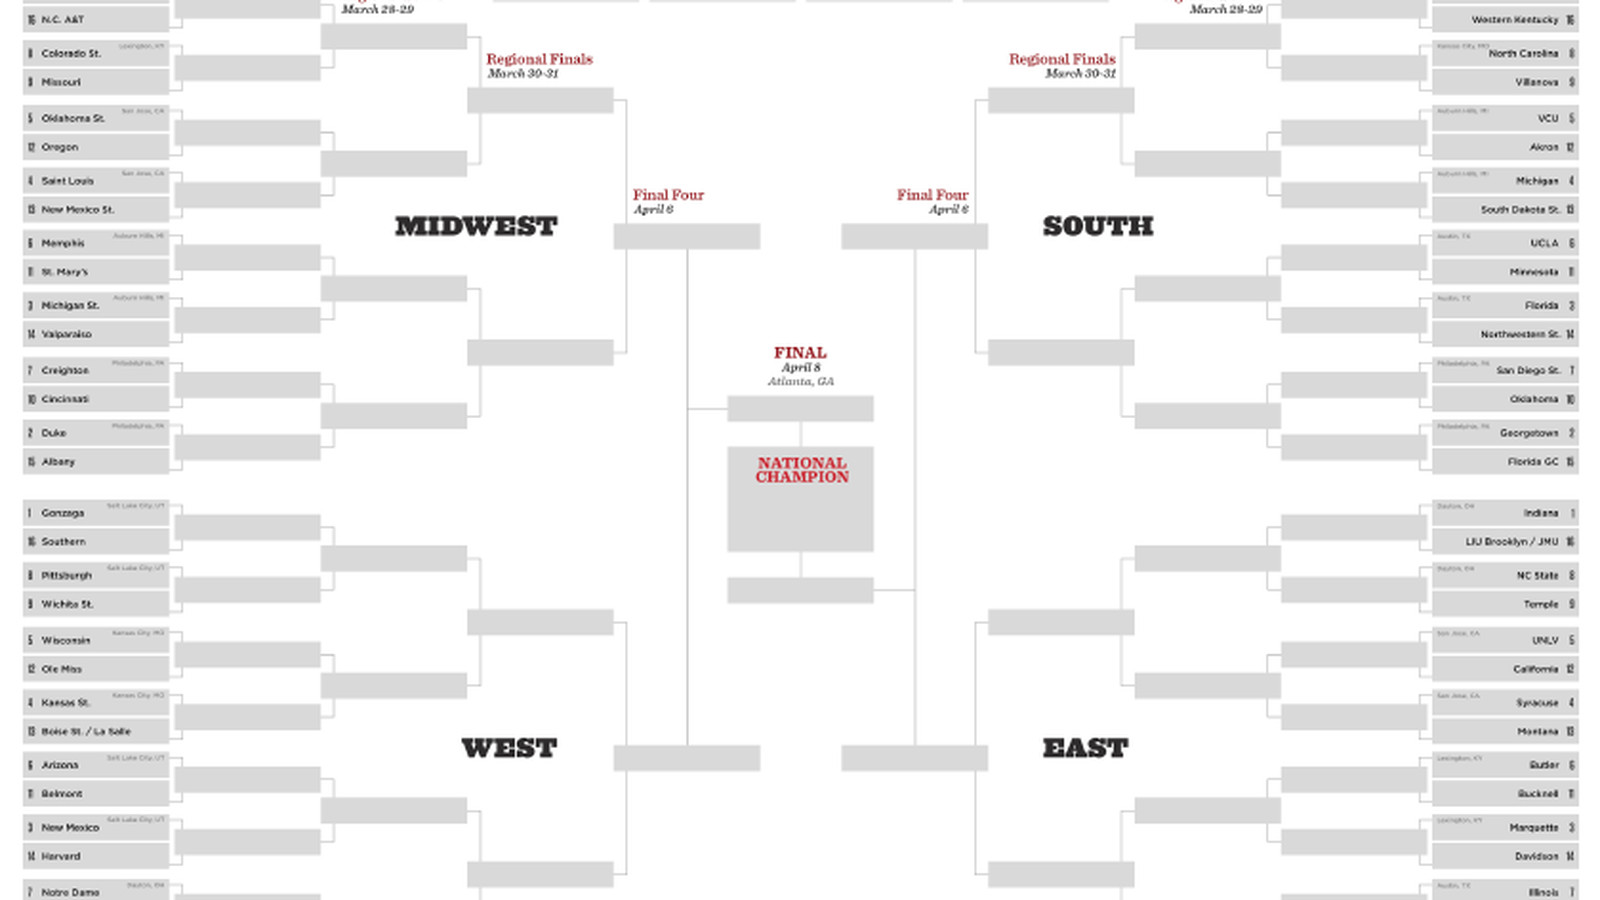 NCAA bracket 2013: March Madness bracket updated after